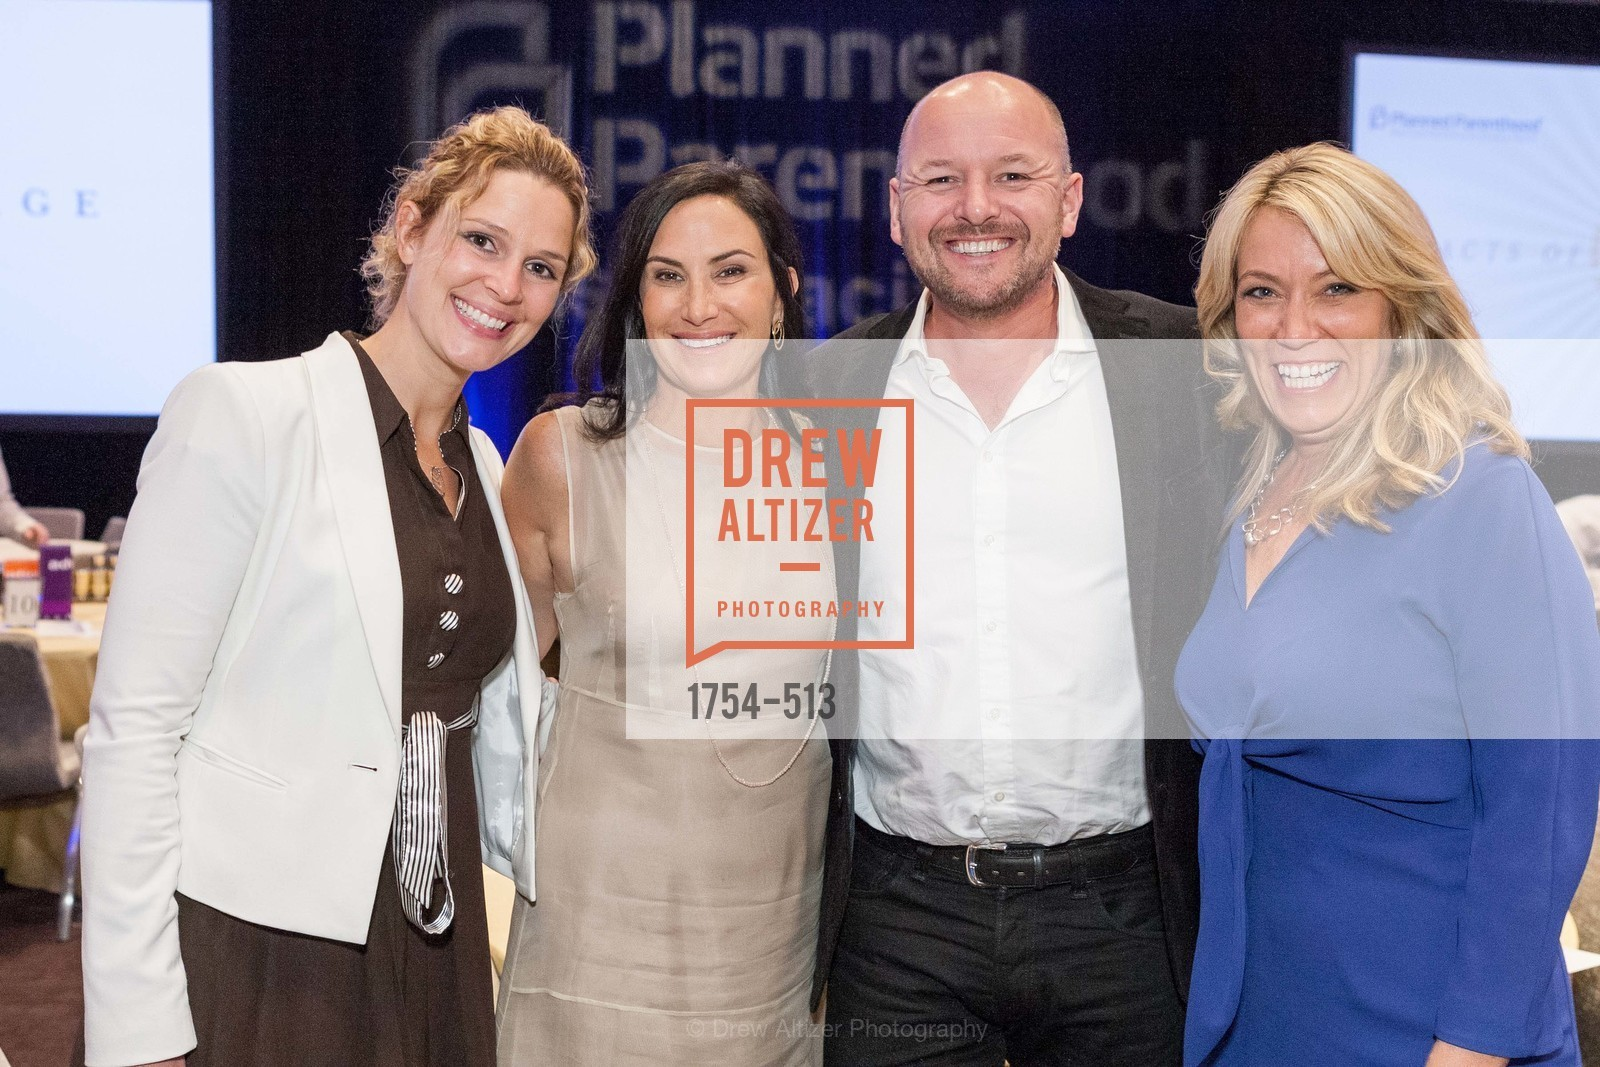 Lucy Logan, Debra Grassgreen, Duncan Logan, Michelle Berry, PLANNED PARENTHOOD SHASTA PACIFIC Presents  Acts of Courage, US. US, April 10th, 2014,Drew Altizer, Drew Altizer Photography, full-service agency, private events, San Francisco photographer, photographer california